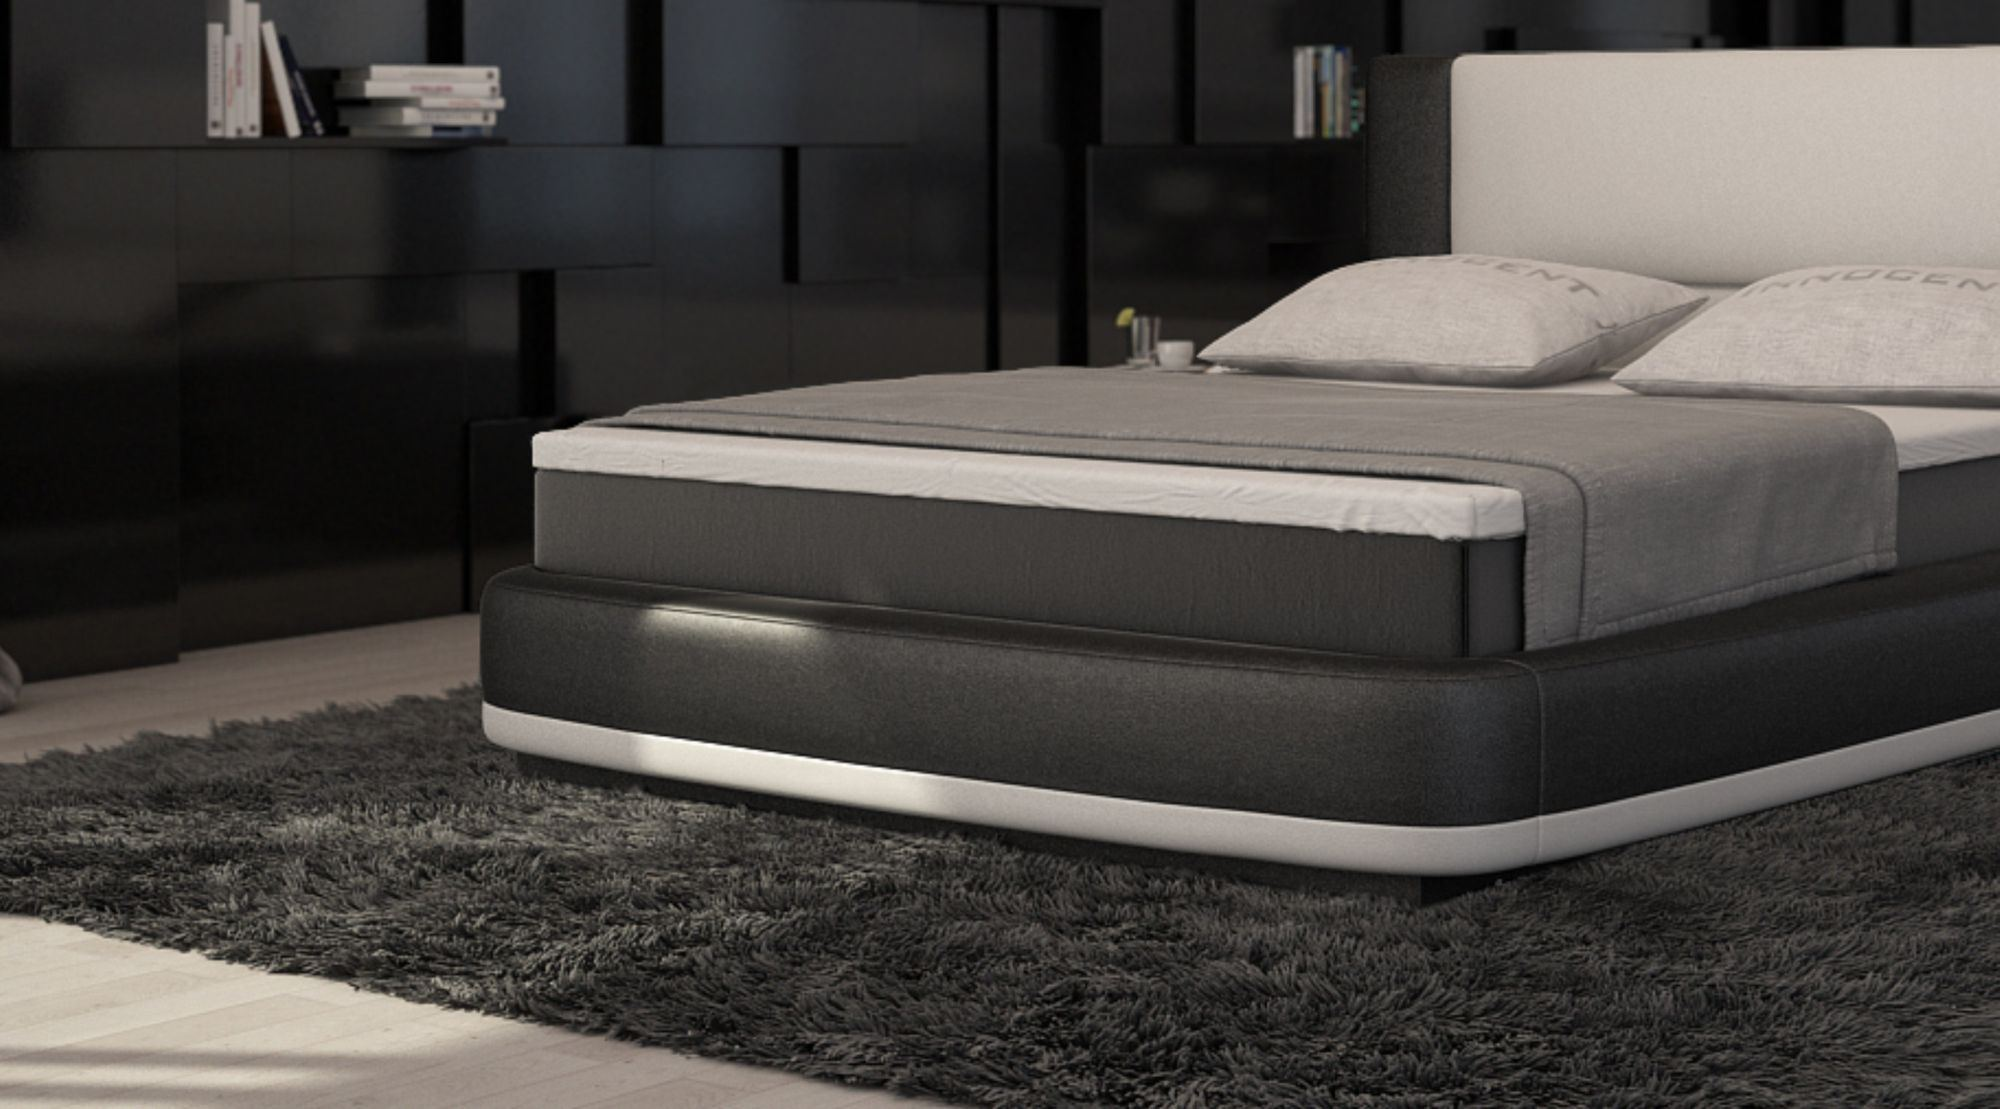 sofas ledersofa design boxspringbett aquila betten g nstig online kaufen. Black Bedroom Furniture Sets. Home Design Ideas